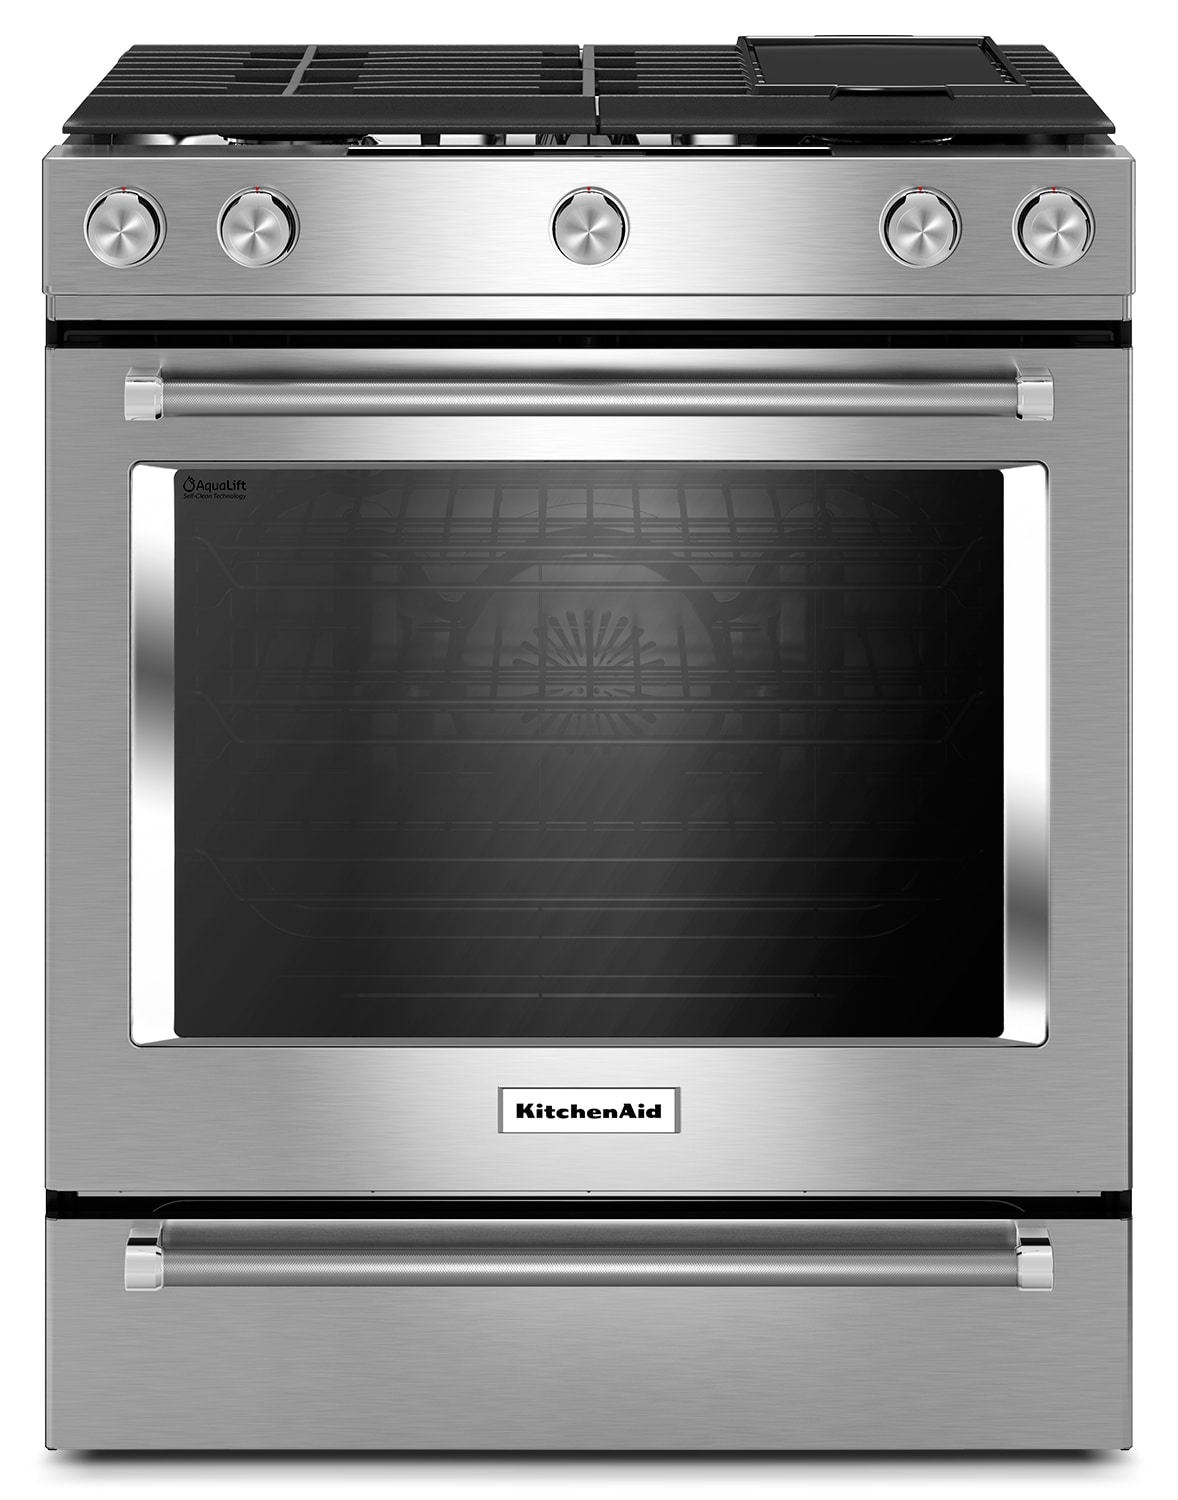 KitchenAid Stainless Steel Slide-In Gas Convection Range (6.5 Cu. Ft.) - KSGB900ESS